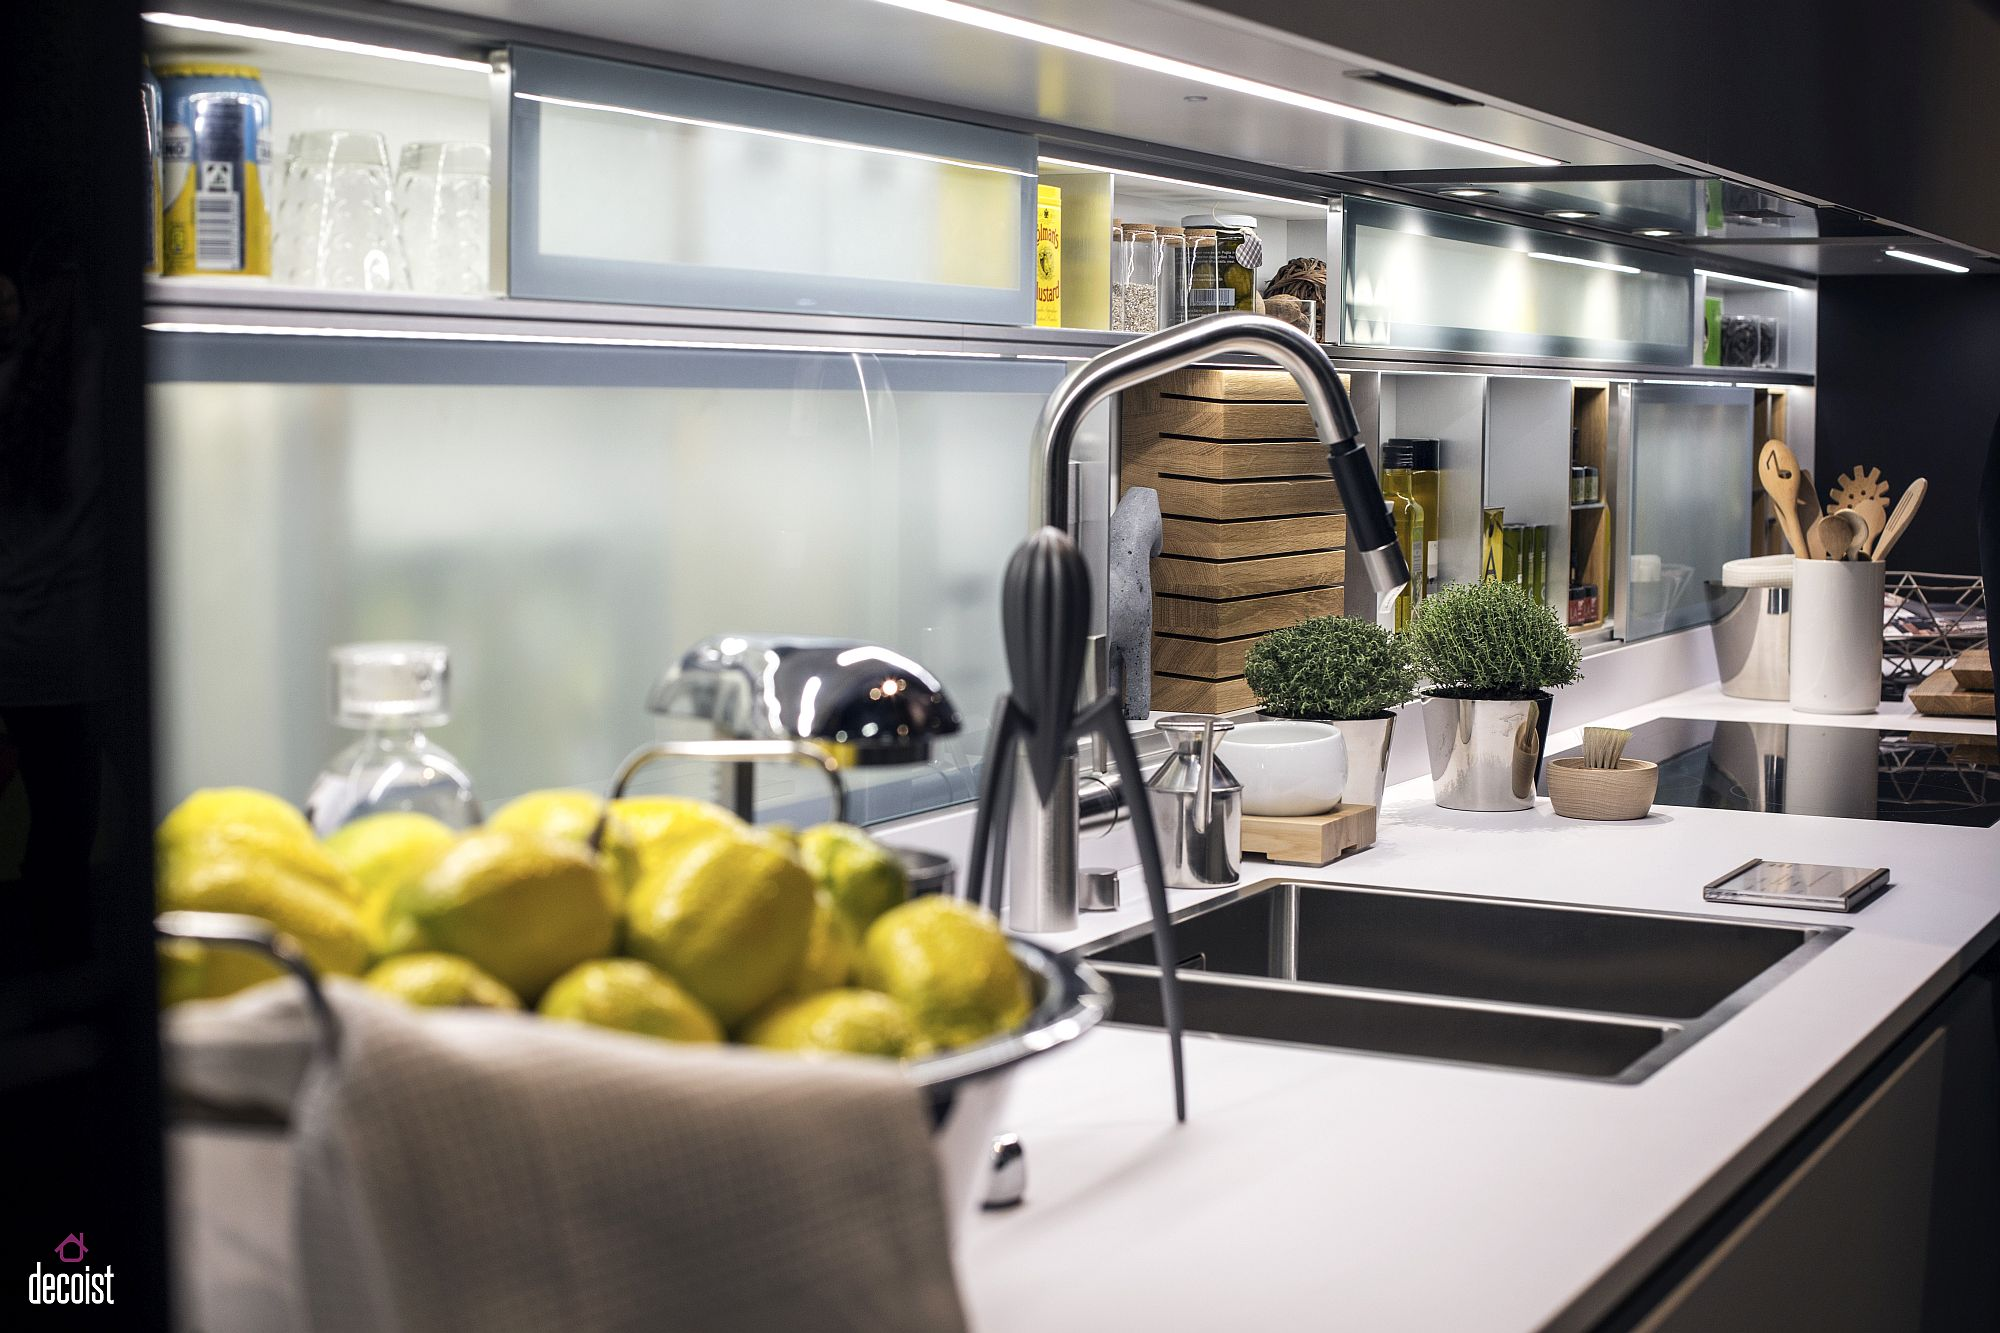 Combine LED recessed lights with strip ligjts to create the perfect kitchen counter